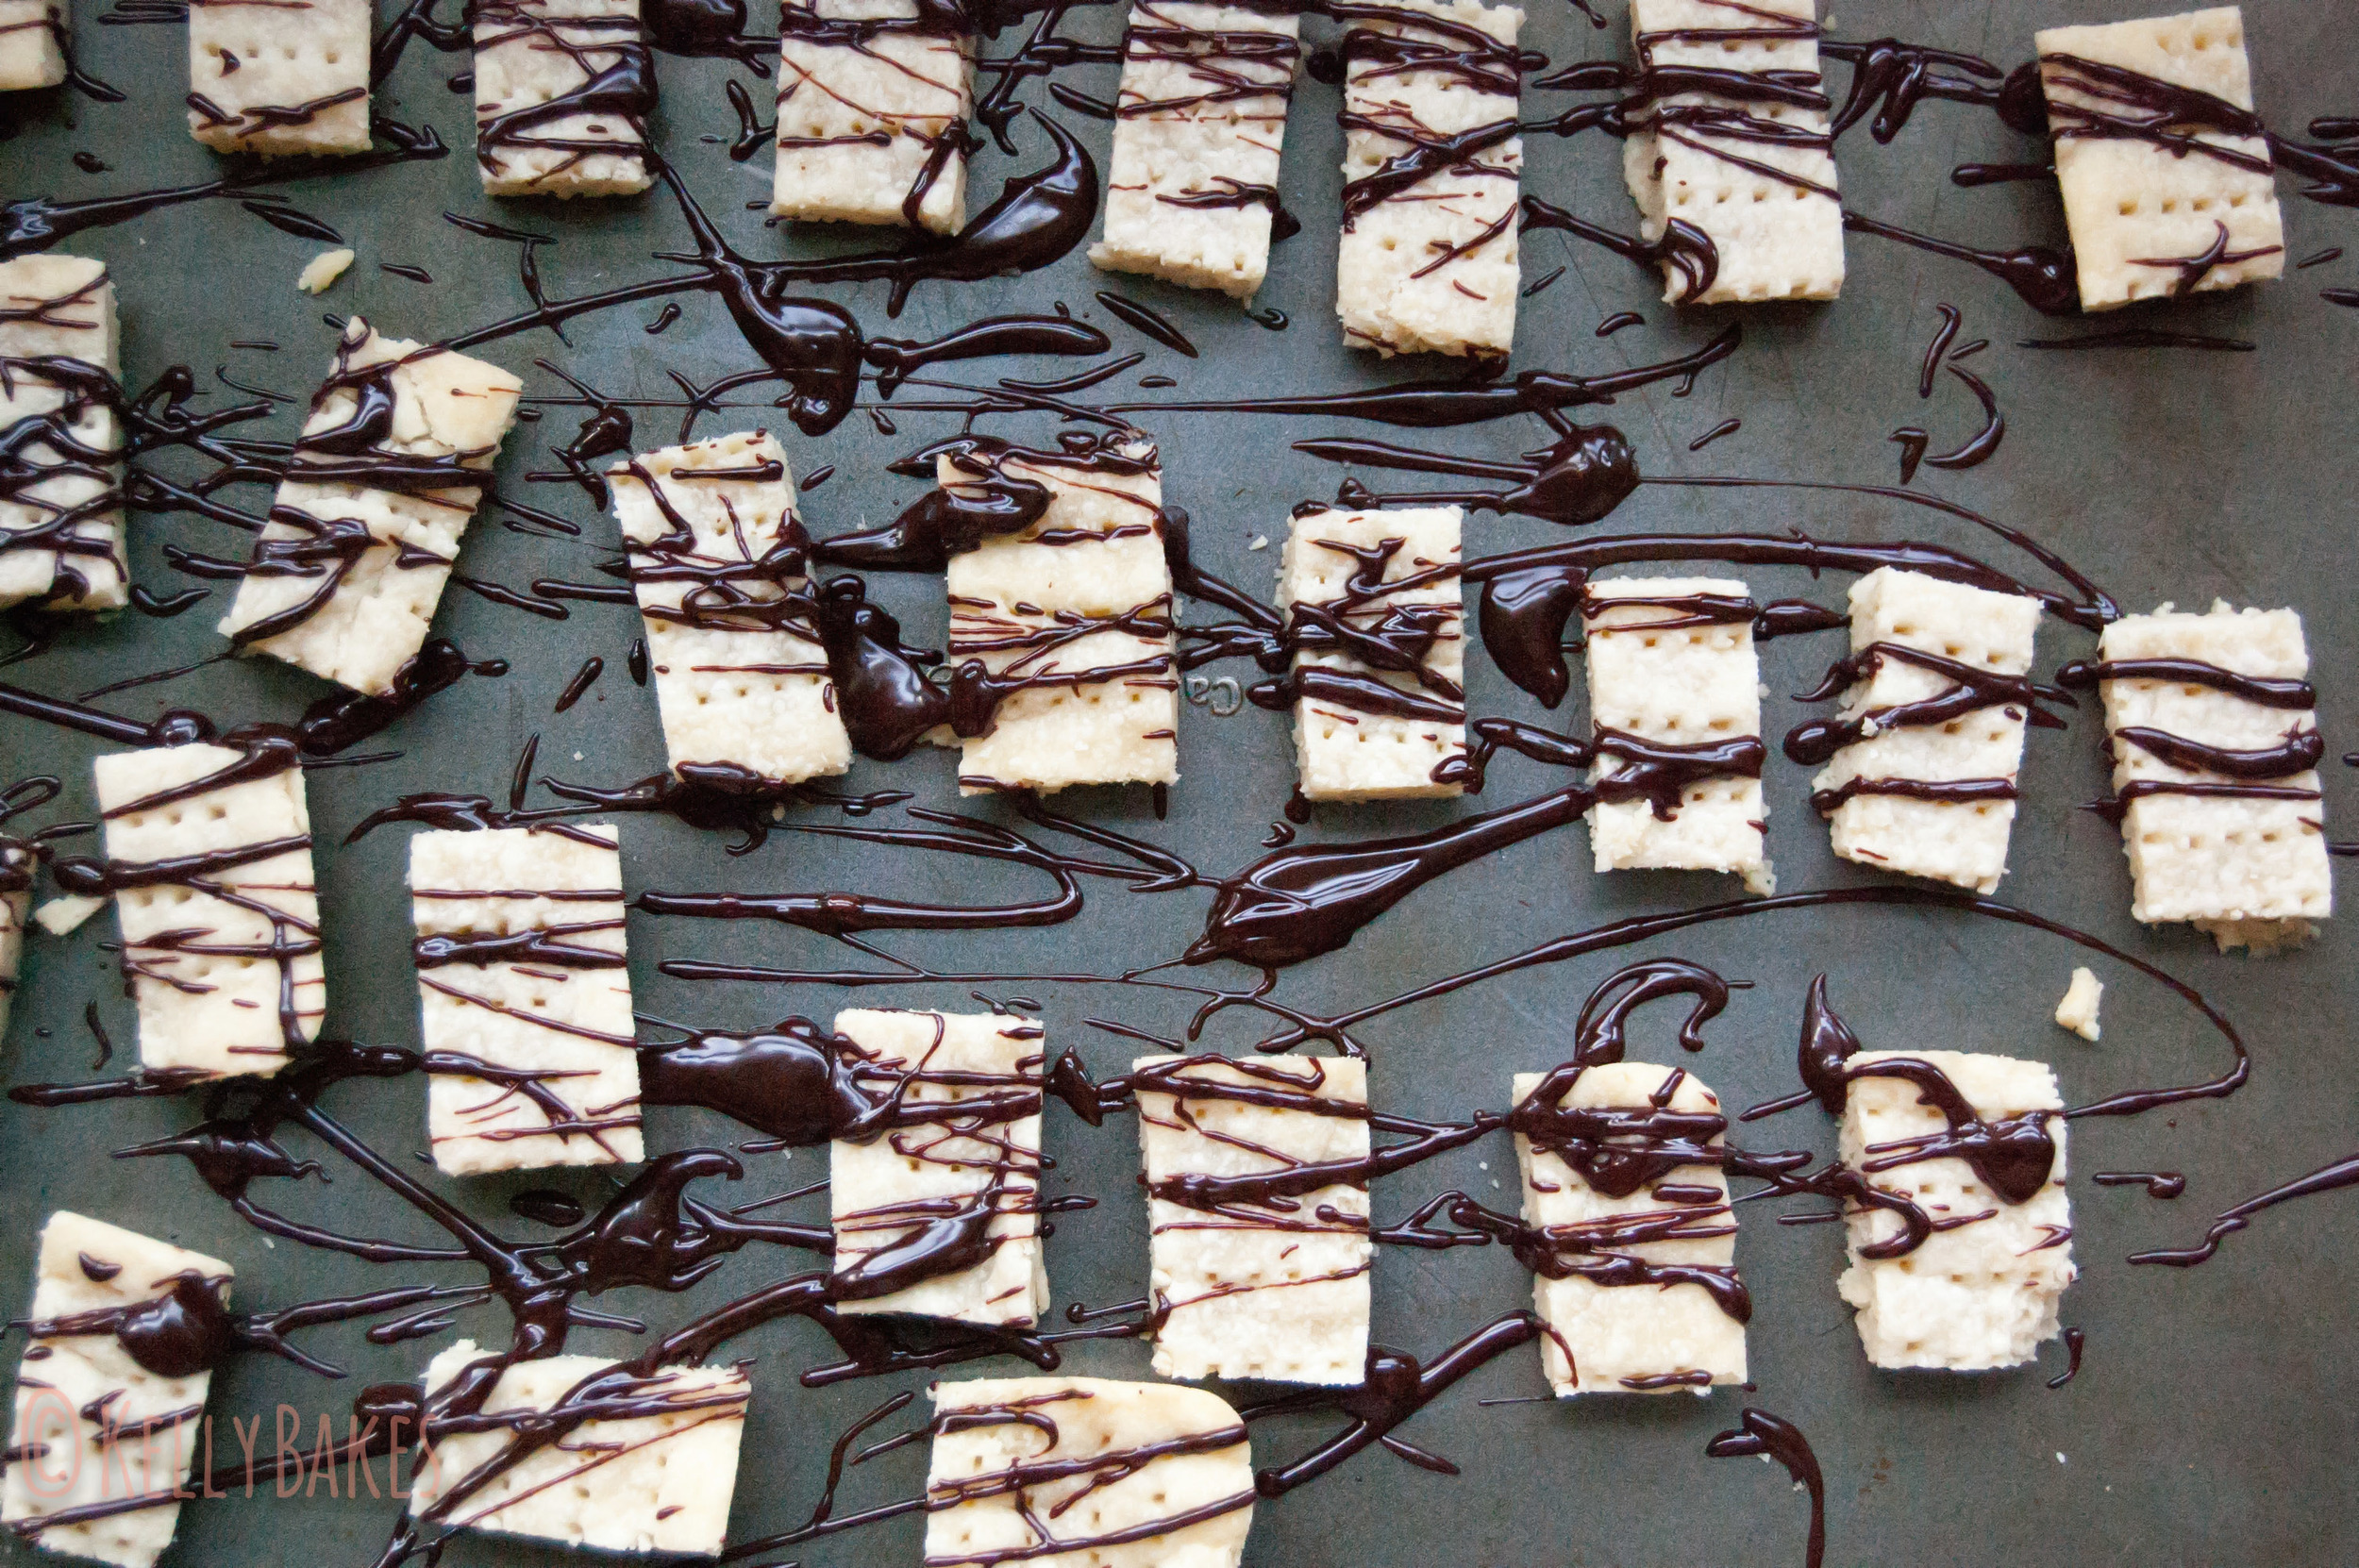 Scottish Shortbread with Chocolate Bourbon Drizzle